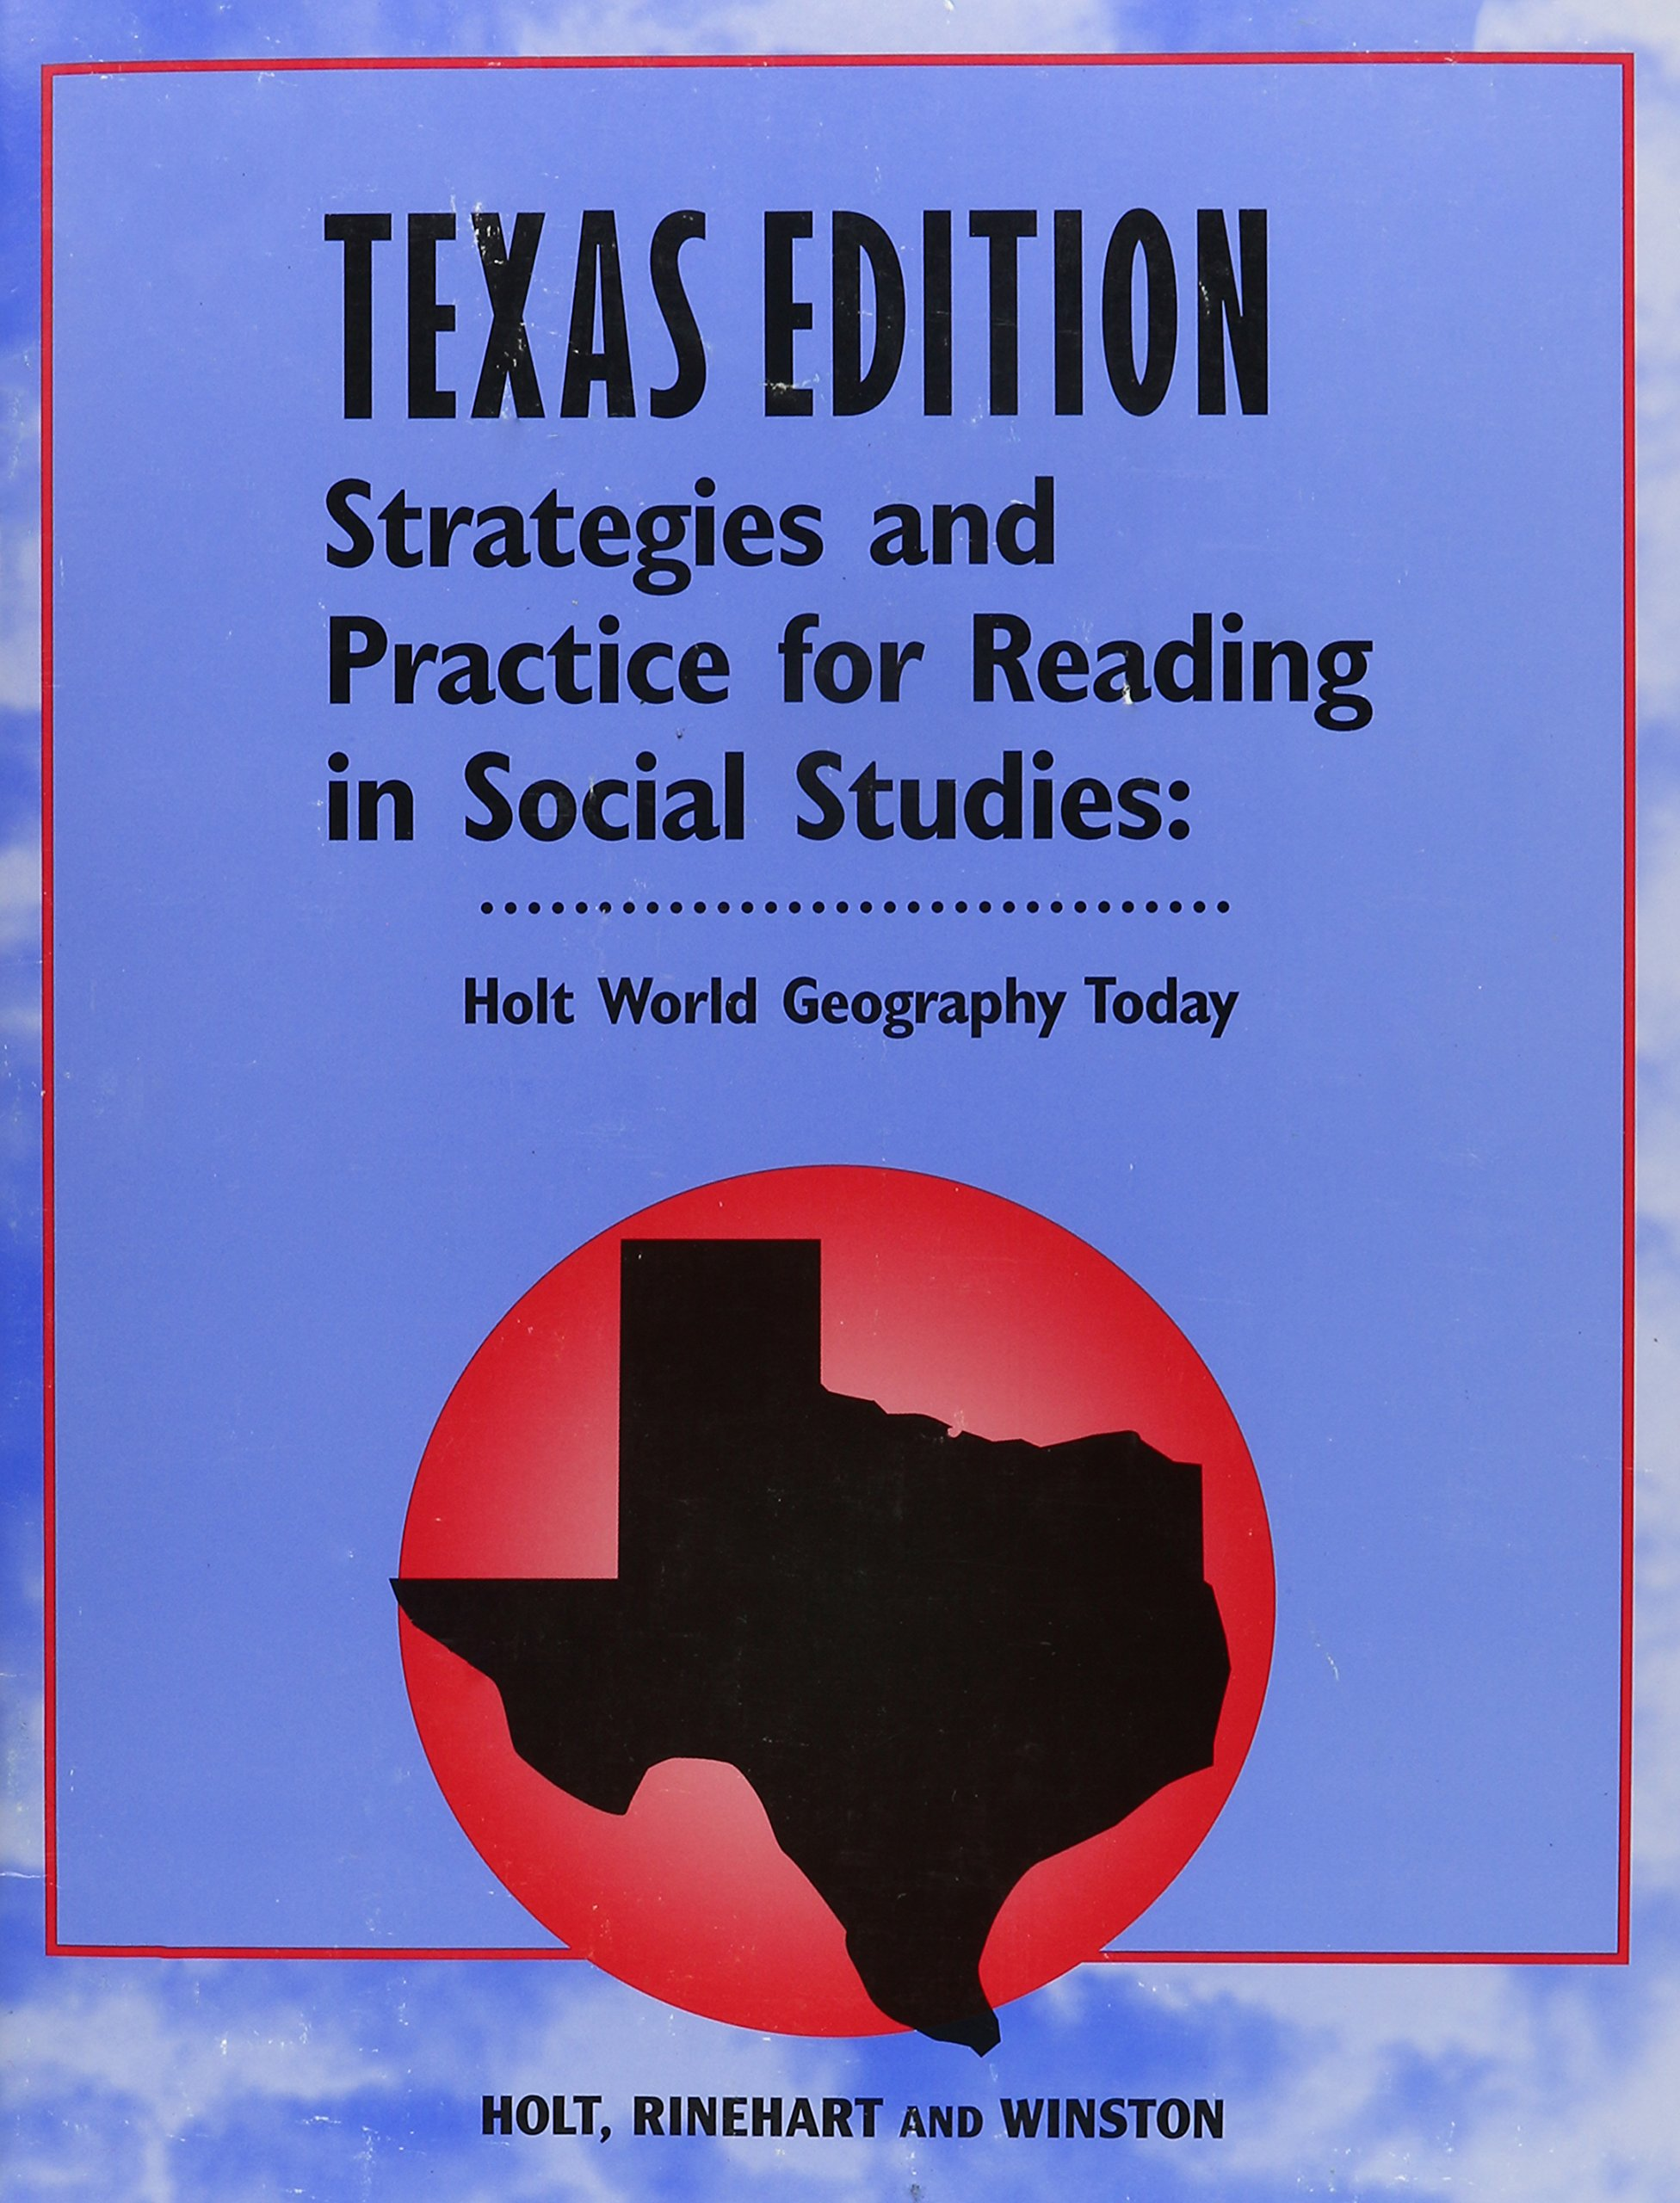 Download Holt World Geography Today Texas: Strategies and Practice Reading Grades 9-12 pdf epub